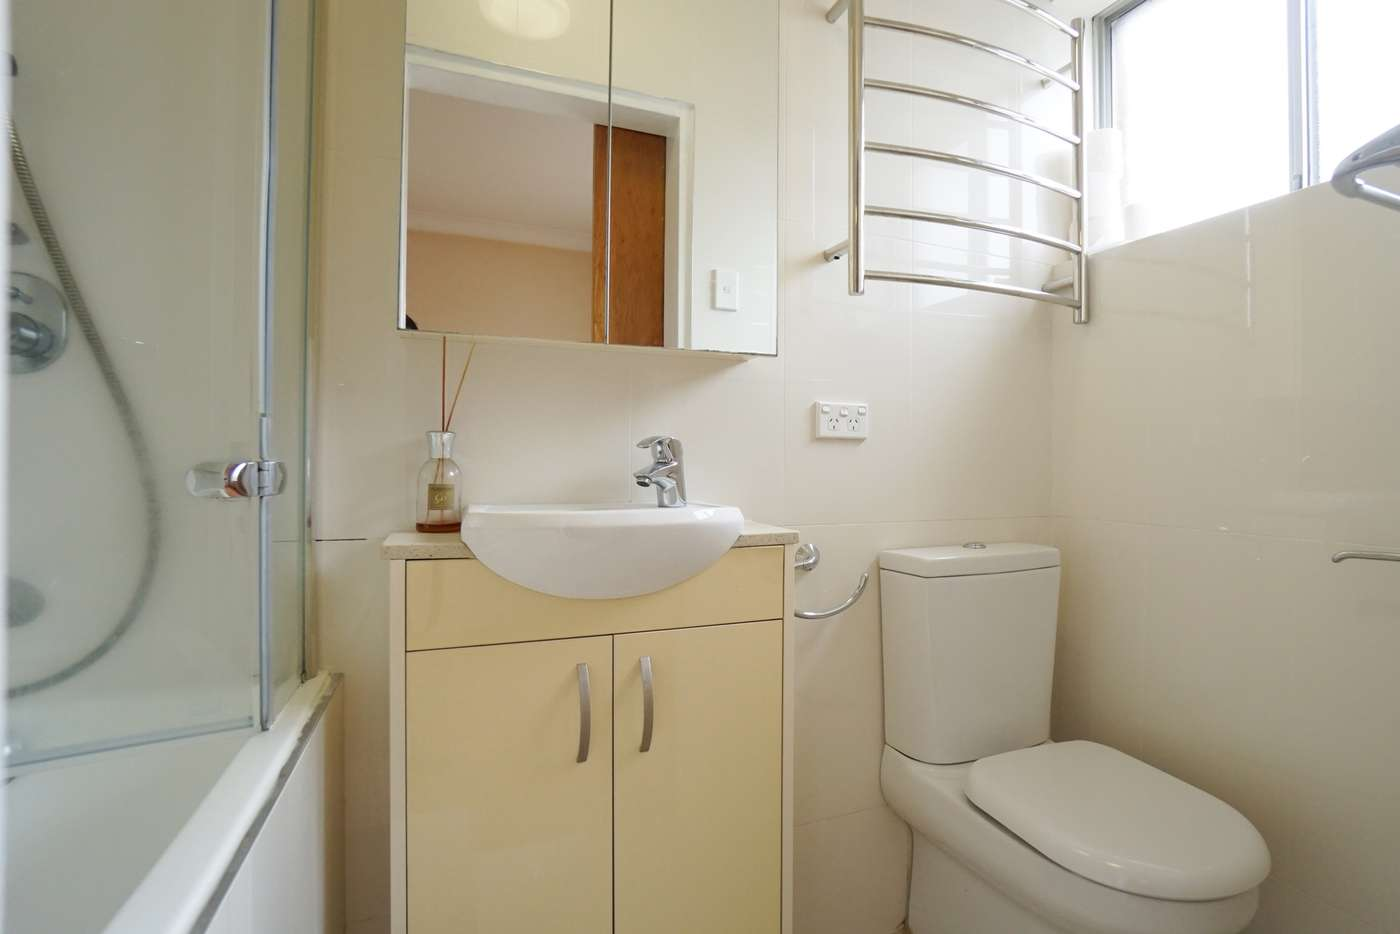 Seventh view of Homely apartment listing, 5/15 Riverview Street, West Ryde NSW 2114